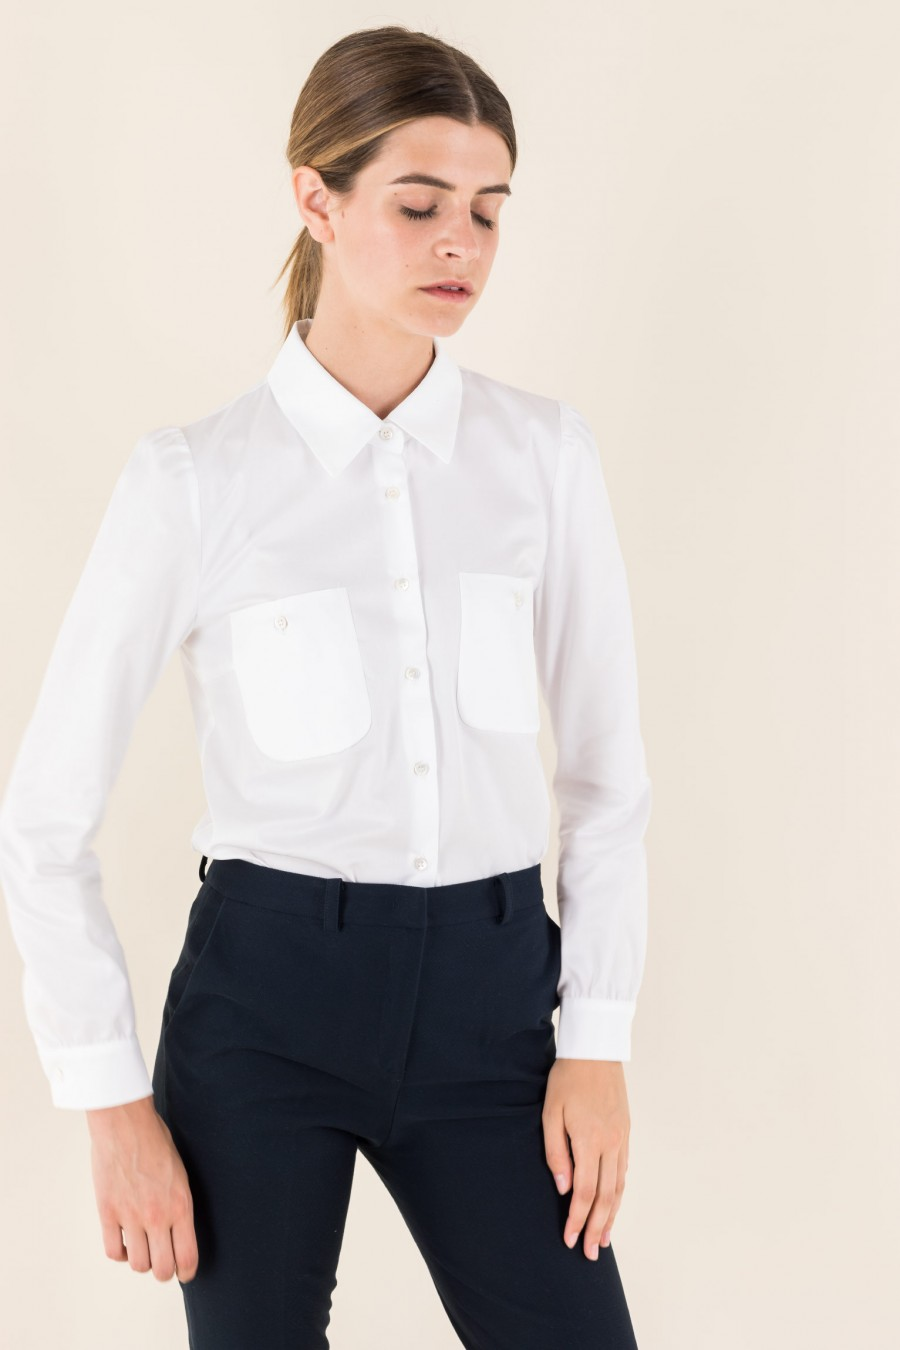 White shirt with little pockets